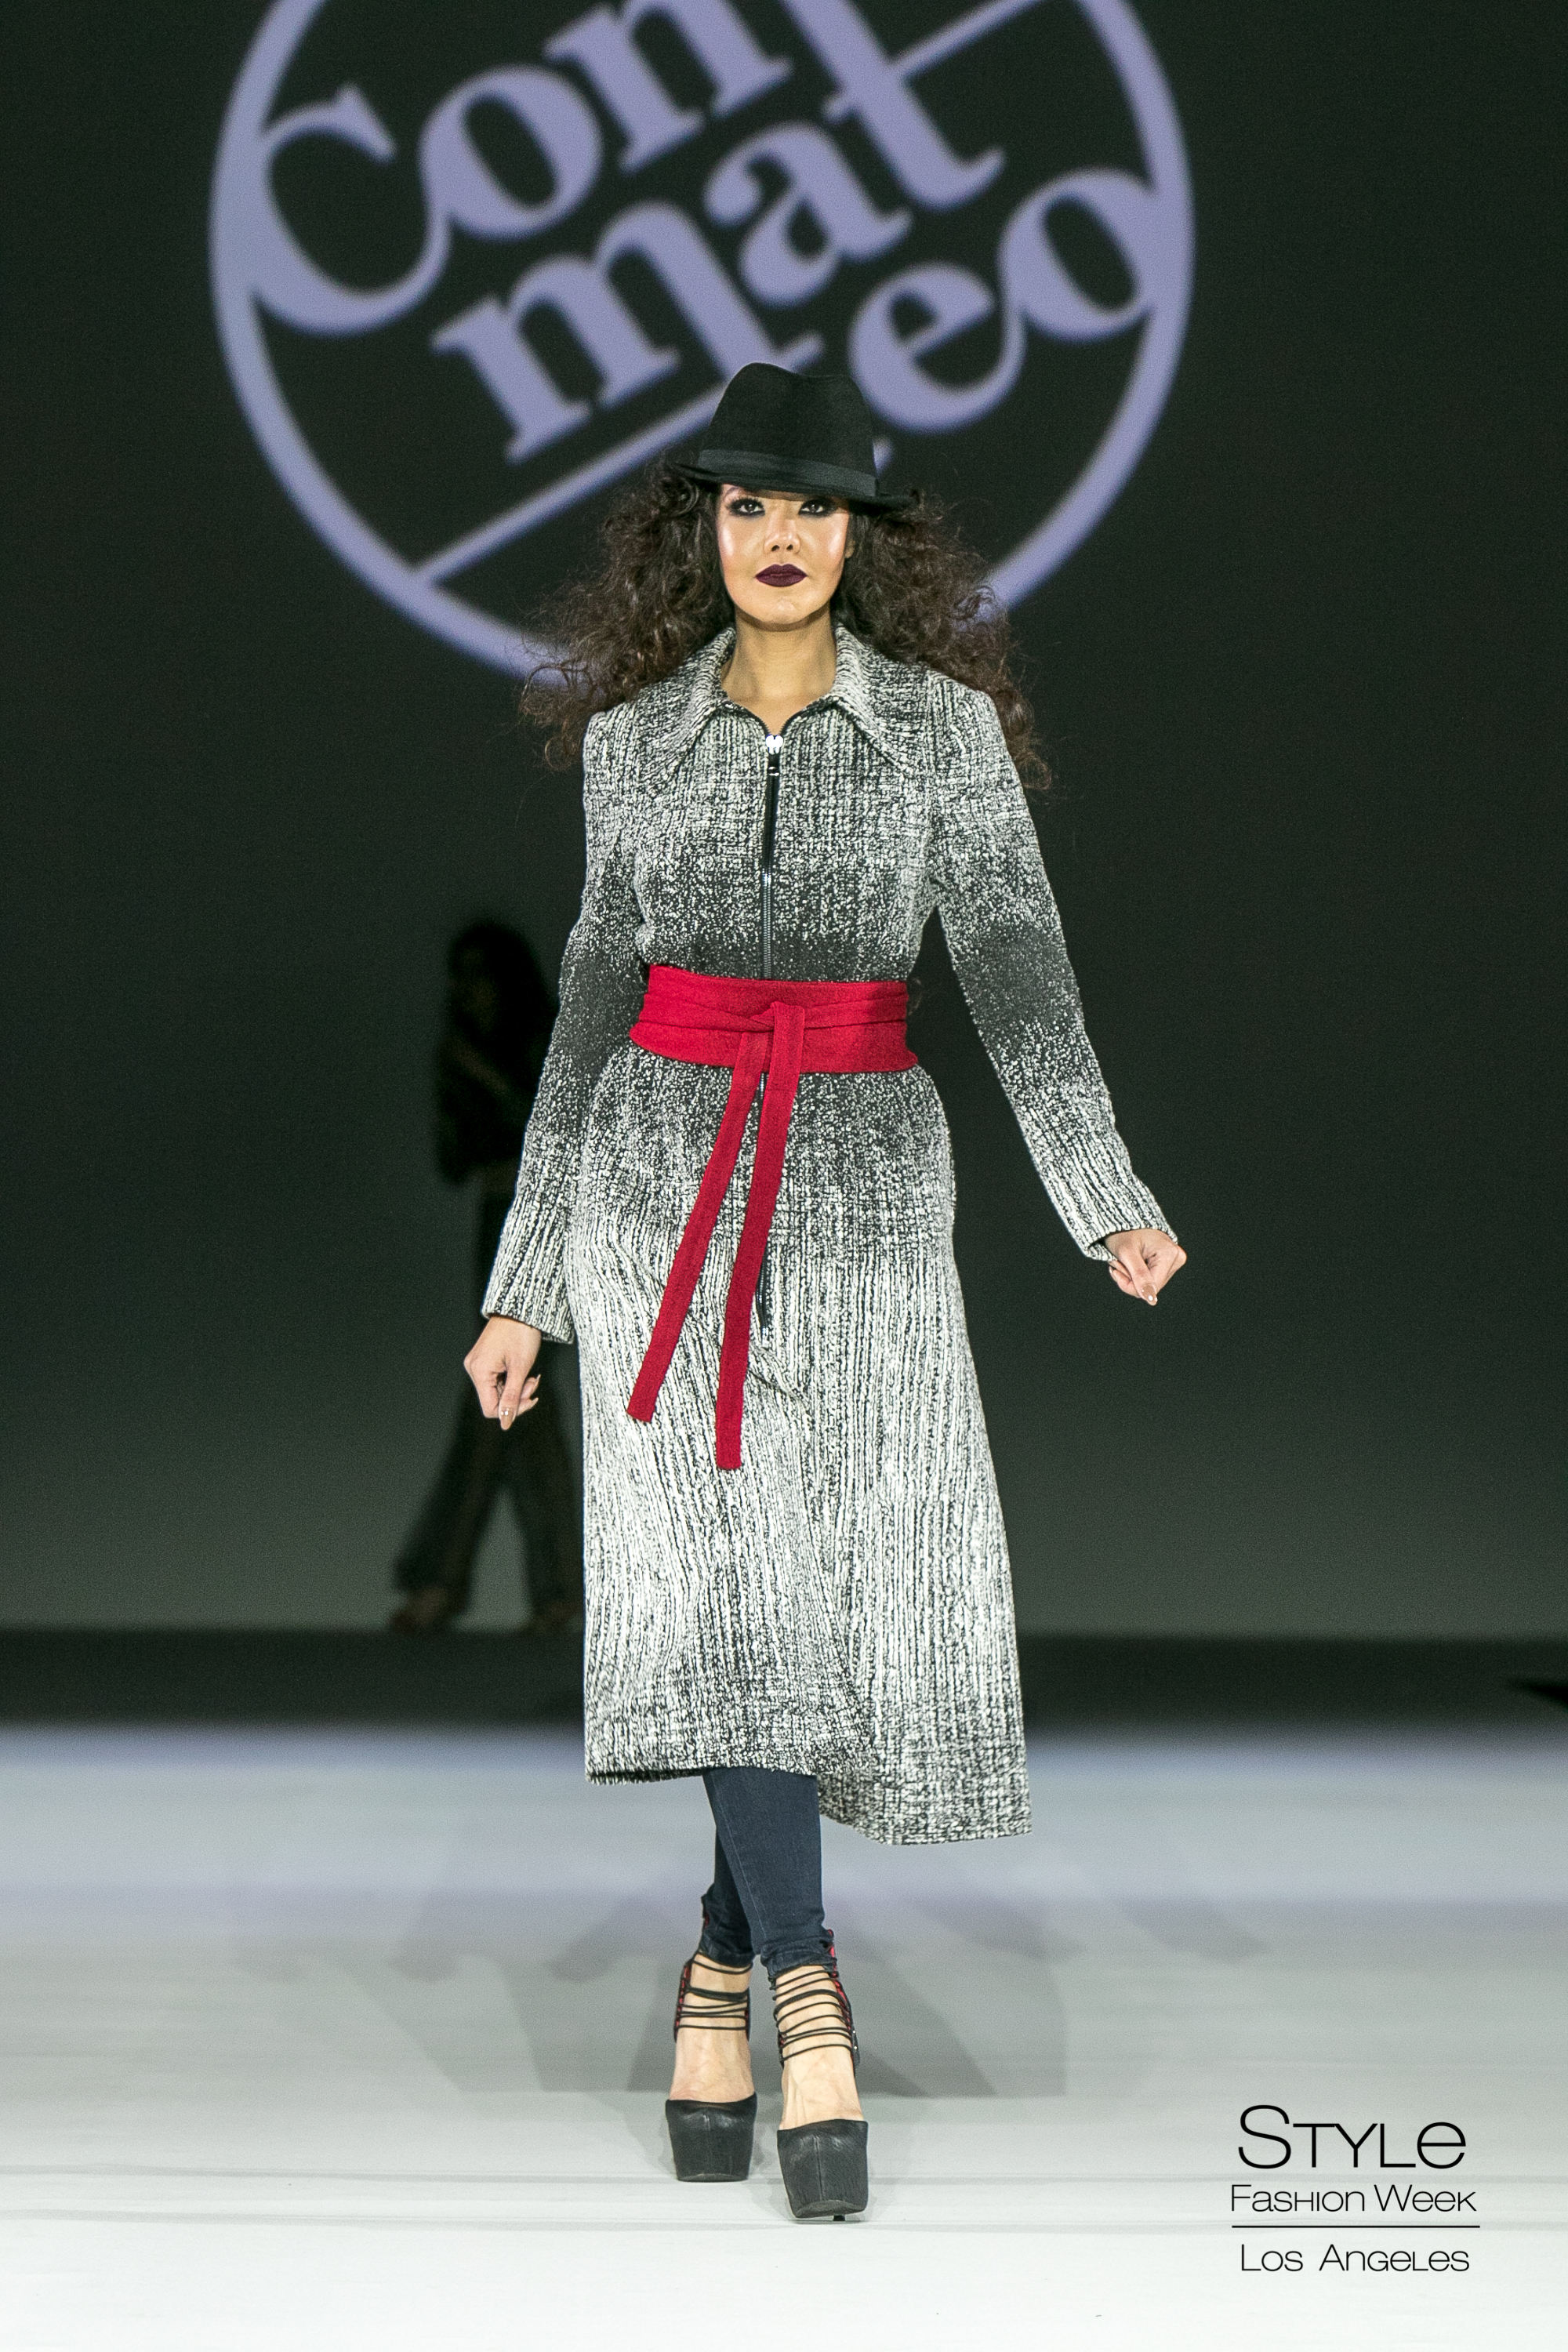 Style Fashion Week Ignites The Runway At The Pacific Design Center In Los Angeles On The Second Day Of Style Fashion Week La Cie Fashion Magazine